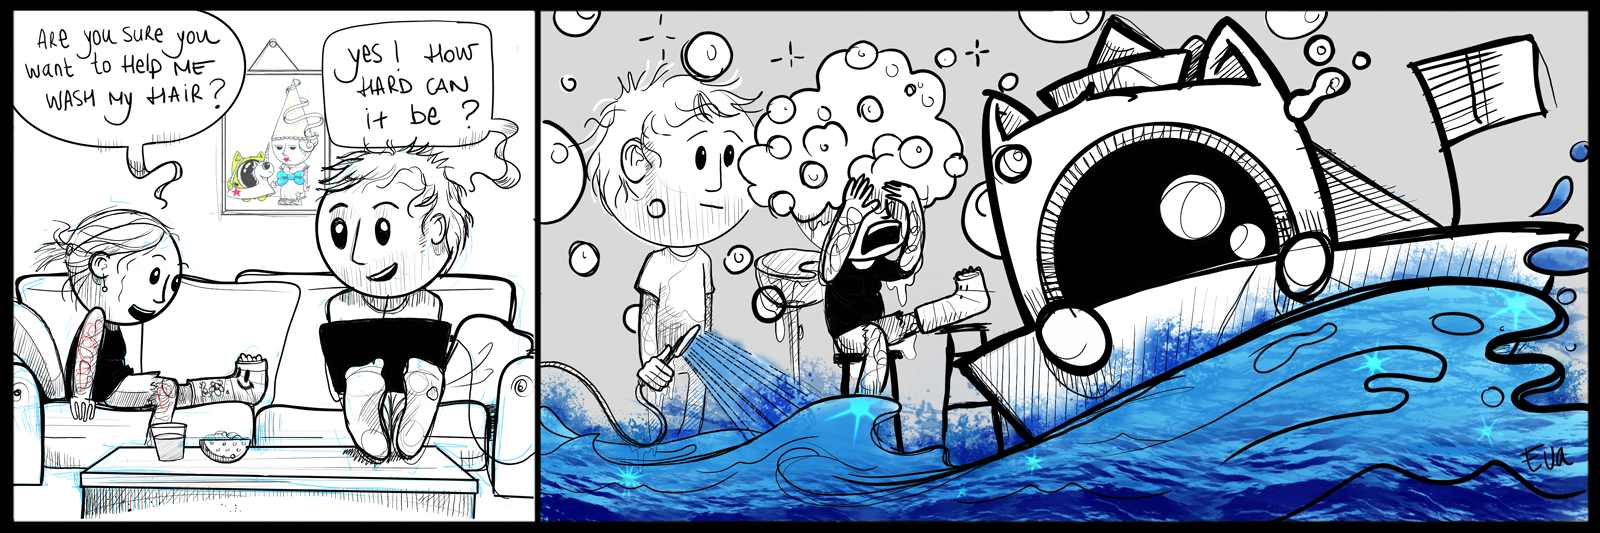 a comic where Eva asks Swentel if he wants to wash her hair to wich he replies, how hard can it be? in the next frame, all is chaos, water everywhere, soap in Eva's eyes and Frank is floating in a paper boat on the waves